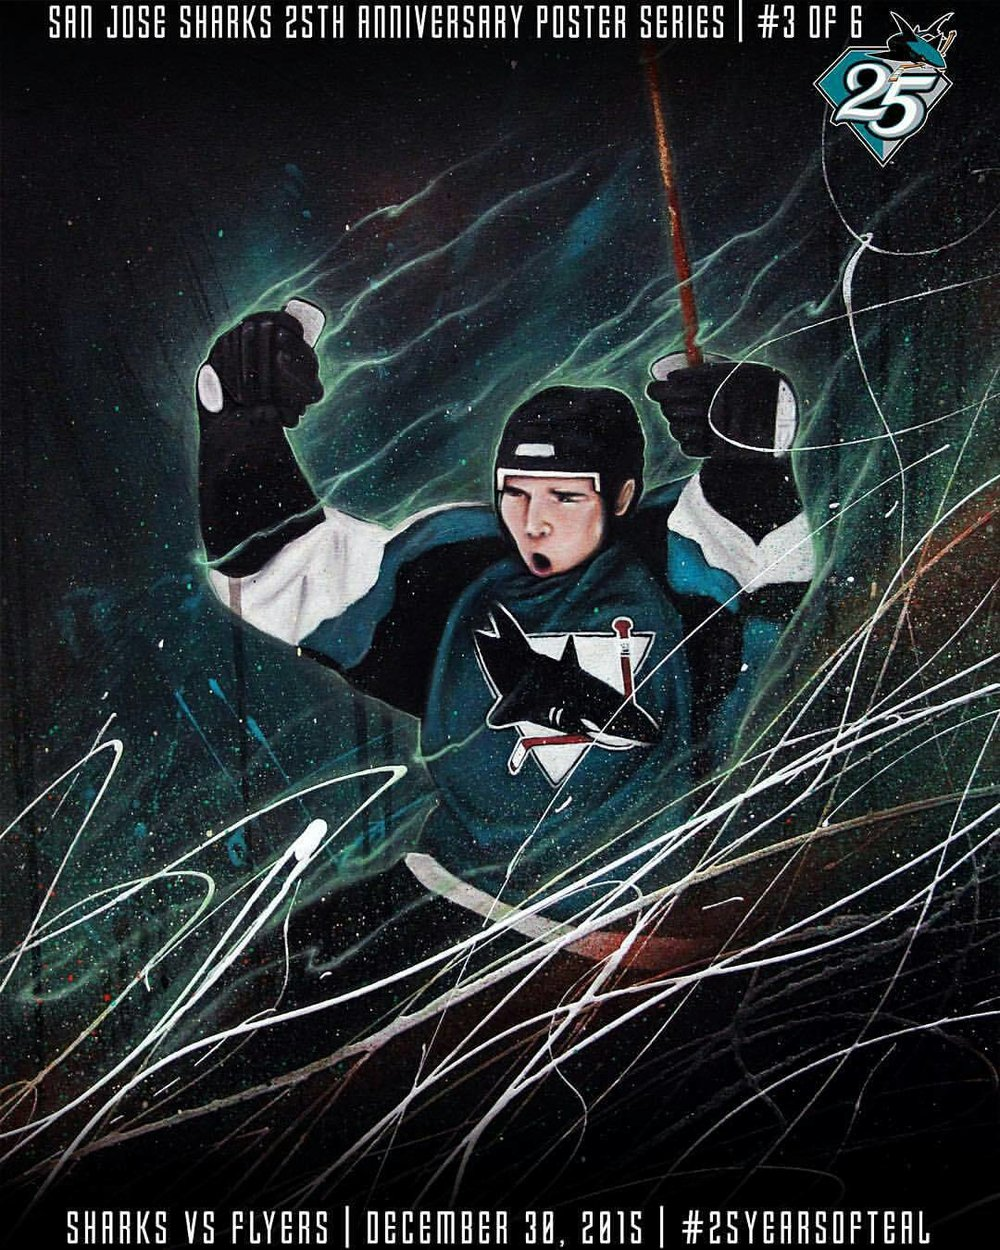 SJ Sharks 25th Anniversary Poster - Commissioned by the Sharks to paint 1 of 6 artist series posters they gave away to each fan in the game.Acrylic and Spray Paint2015